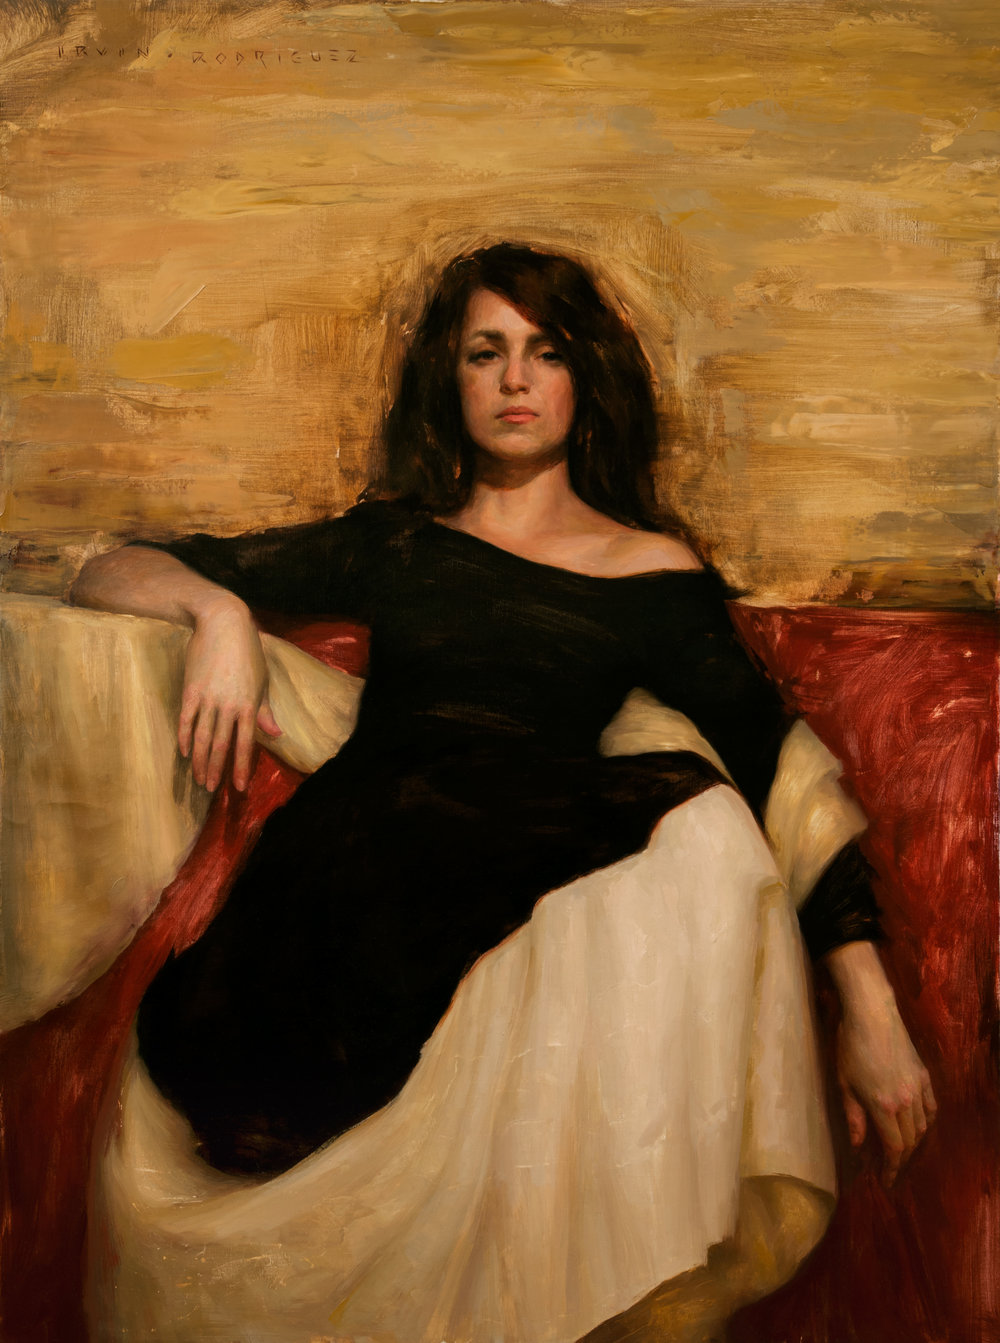 Irvin Rodriguez  |  Woman in Black  |  Oil on Linen  |  40 x 30 inches or 101 ½ x 76 cm